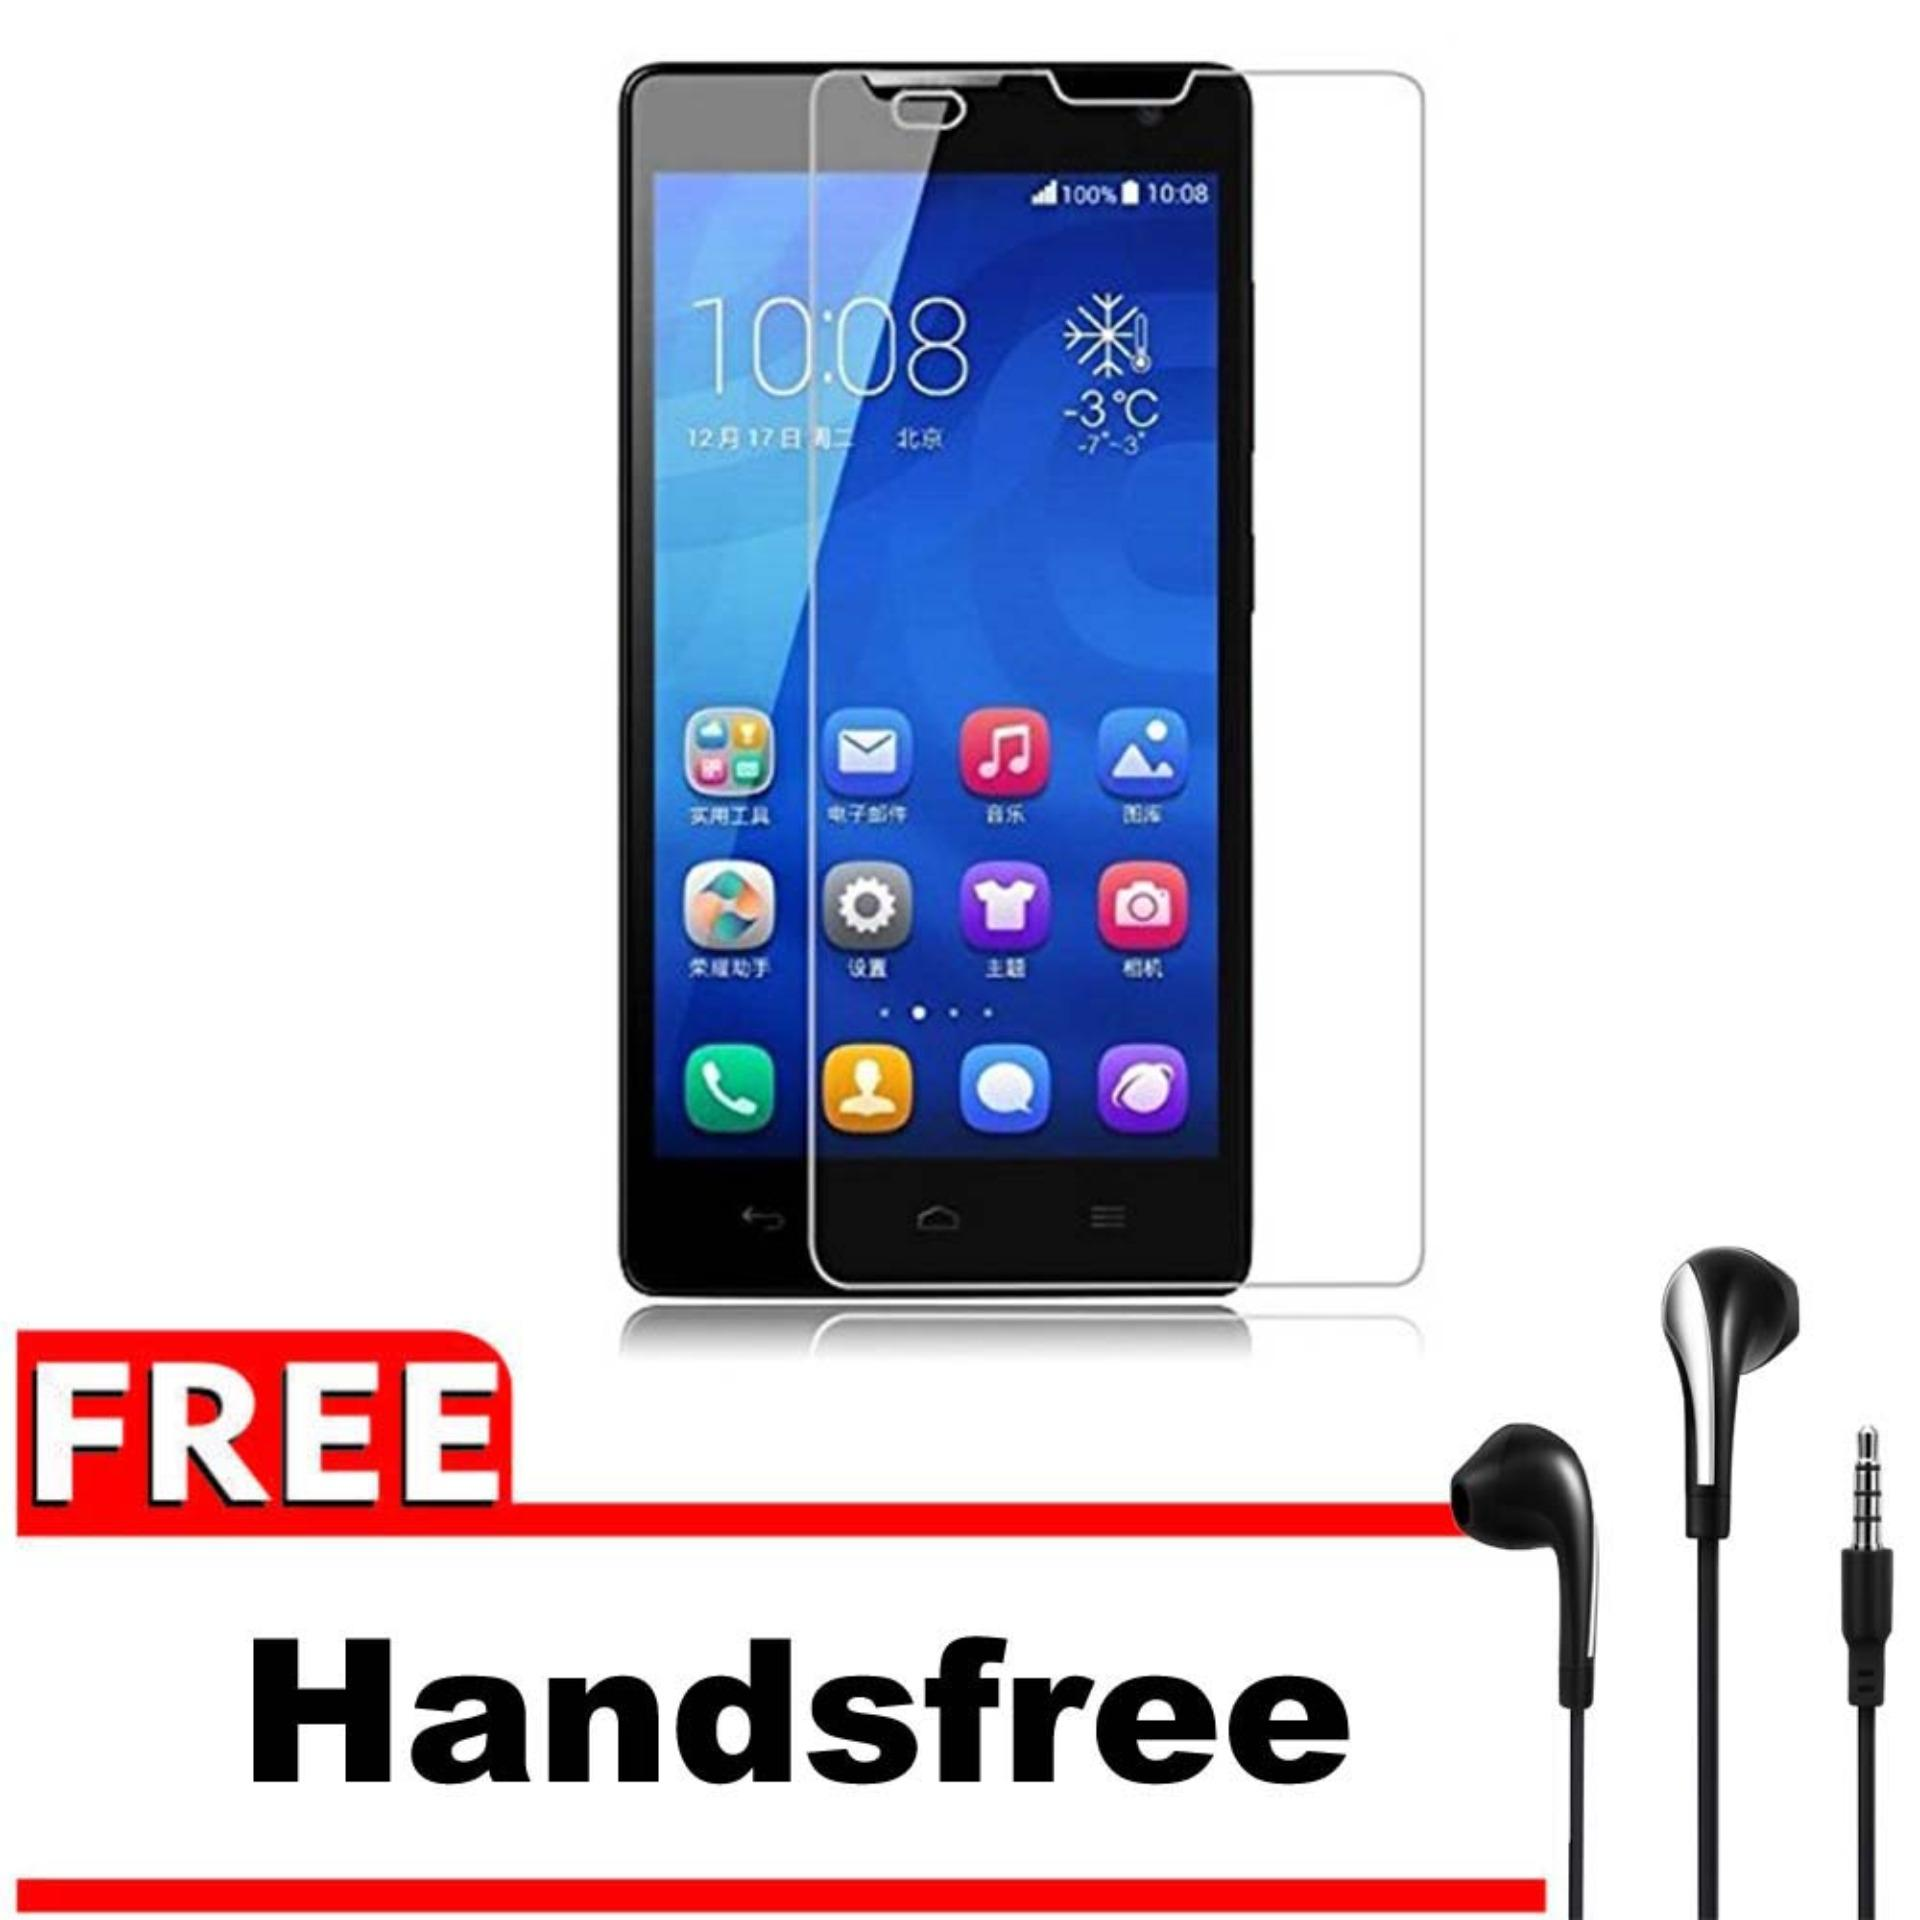 Rp 24.153. Vn Huawei Ascend Honor 3C / LTE / 4G Tempered Glass 9H Screen Protector 0.32mm + Gratis Free Handsfree Earphone Headset Universal - Bening ...